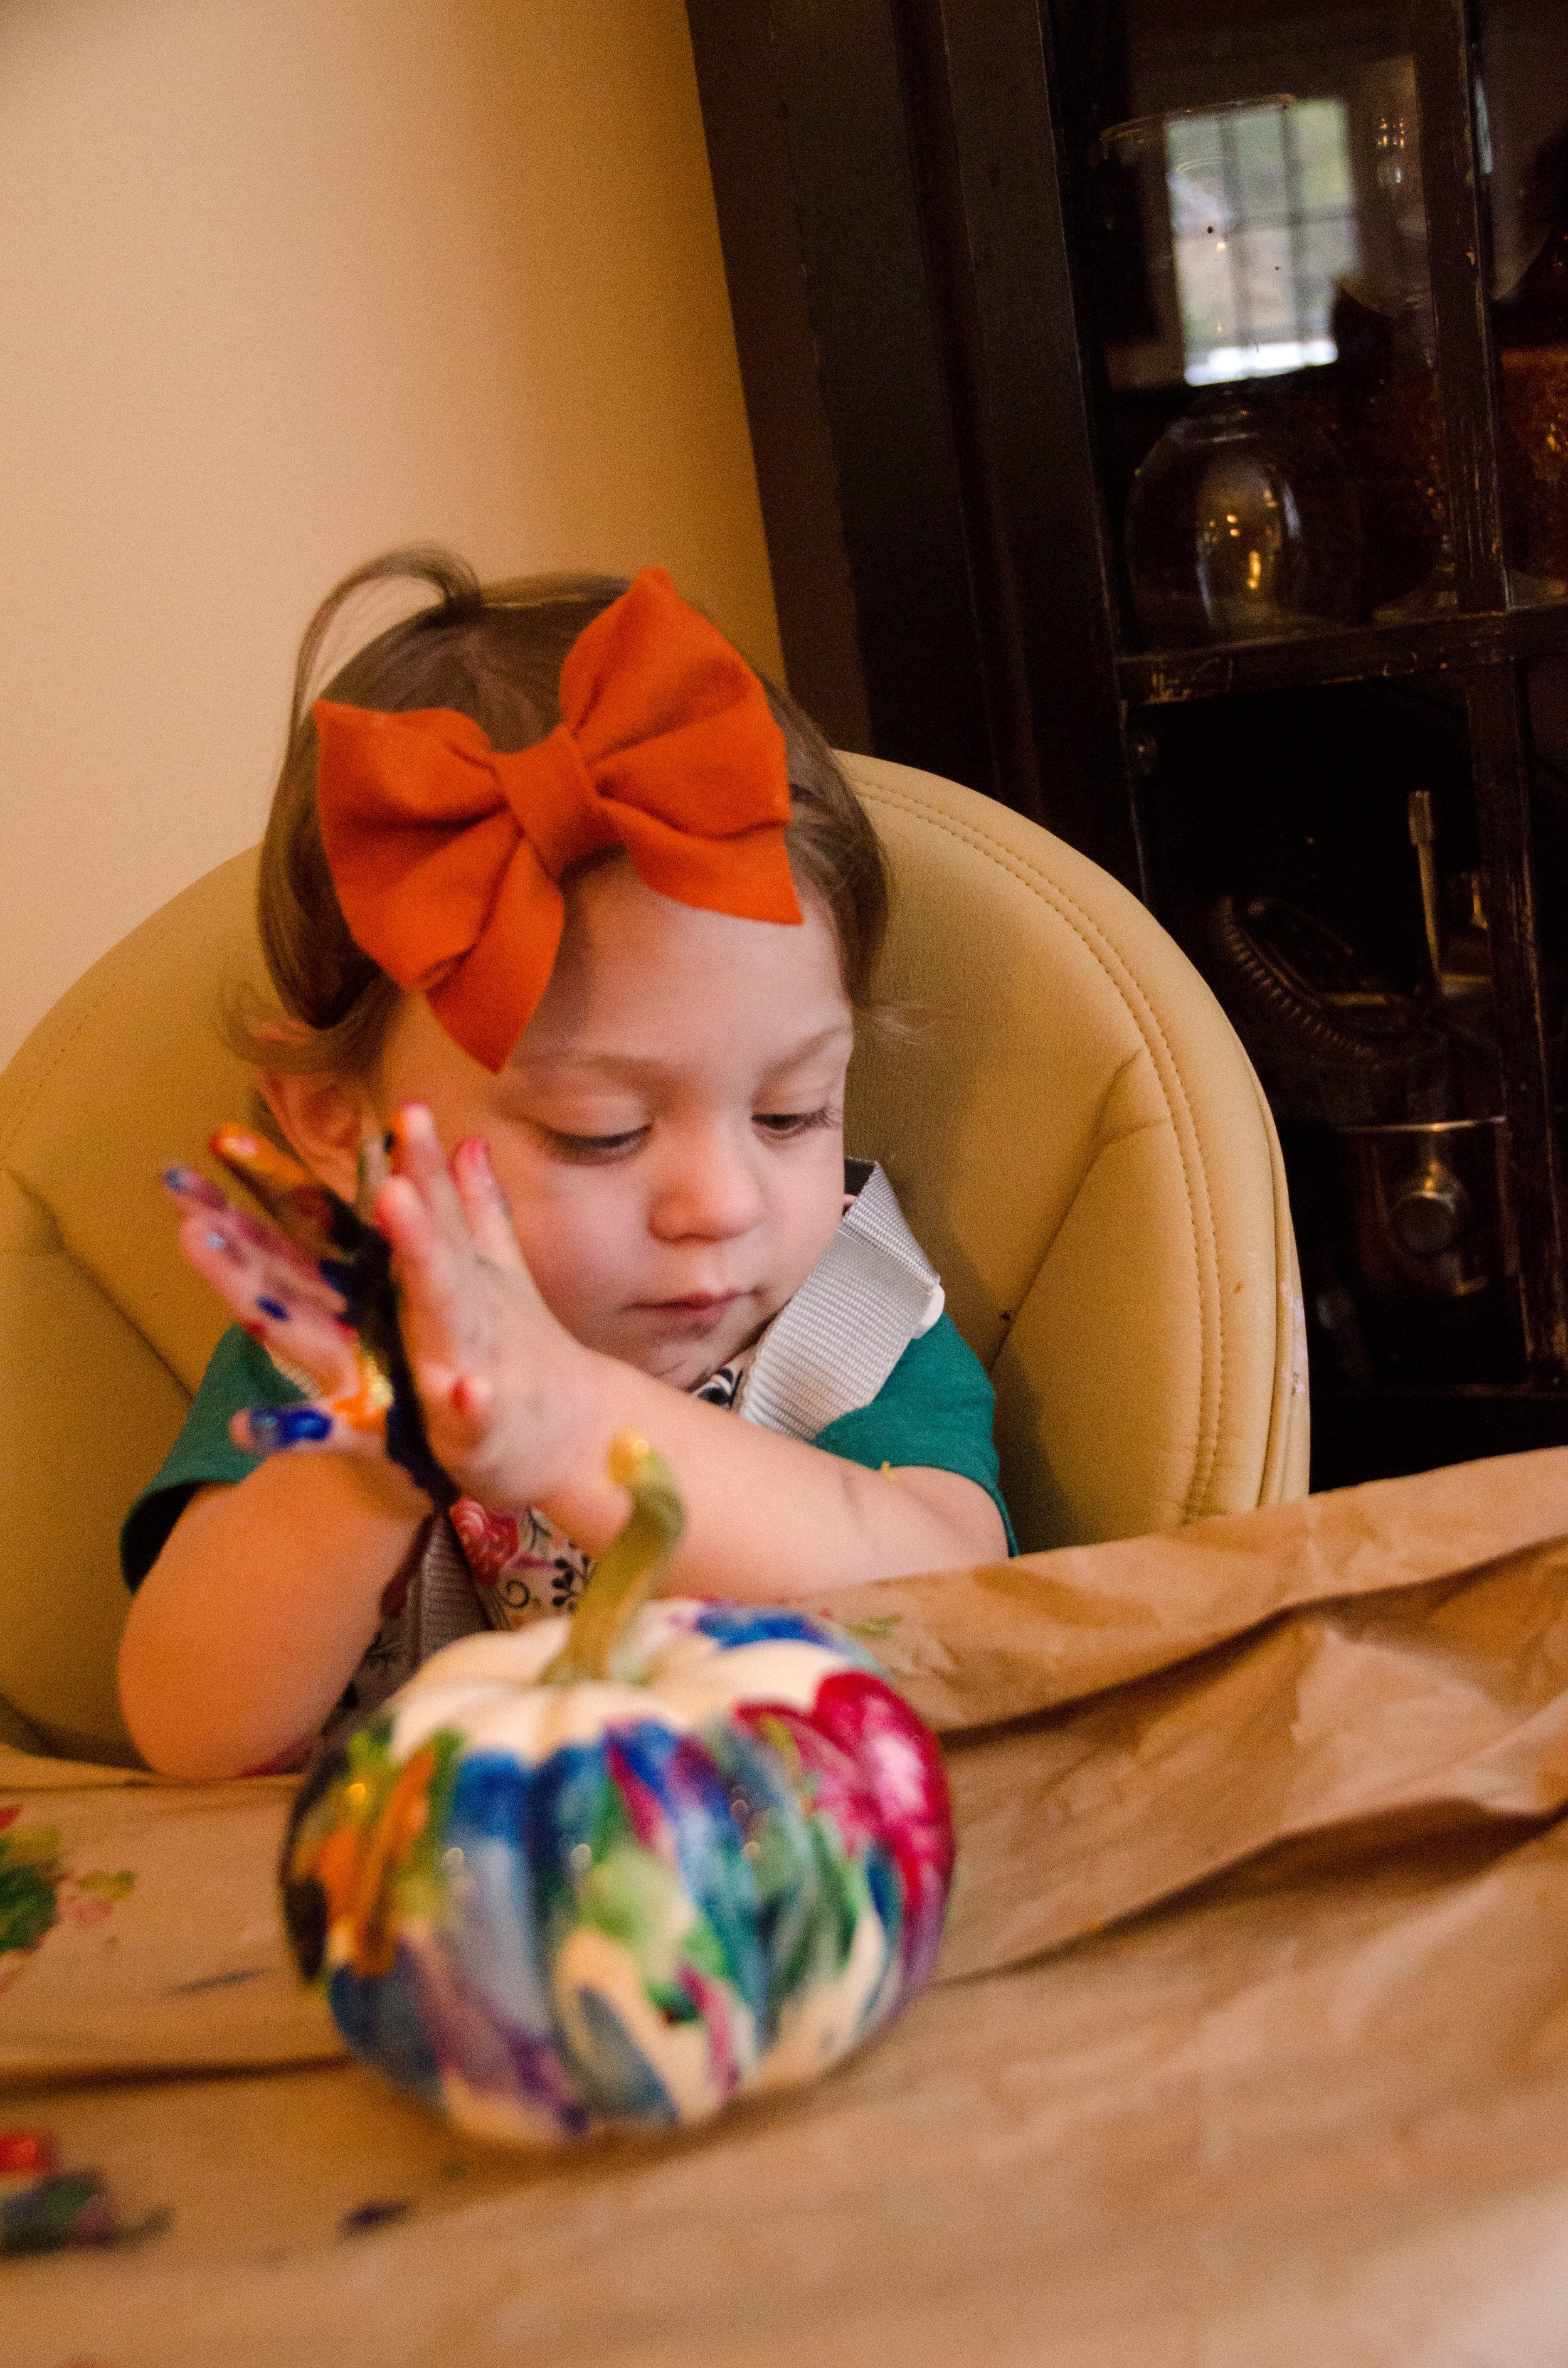 addie belle - 2 years old - october 2017 - shegotguts.com-75.jpg